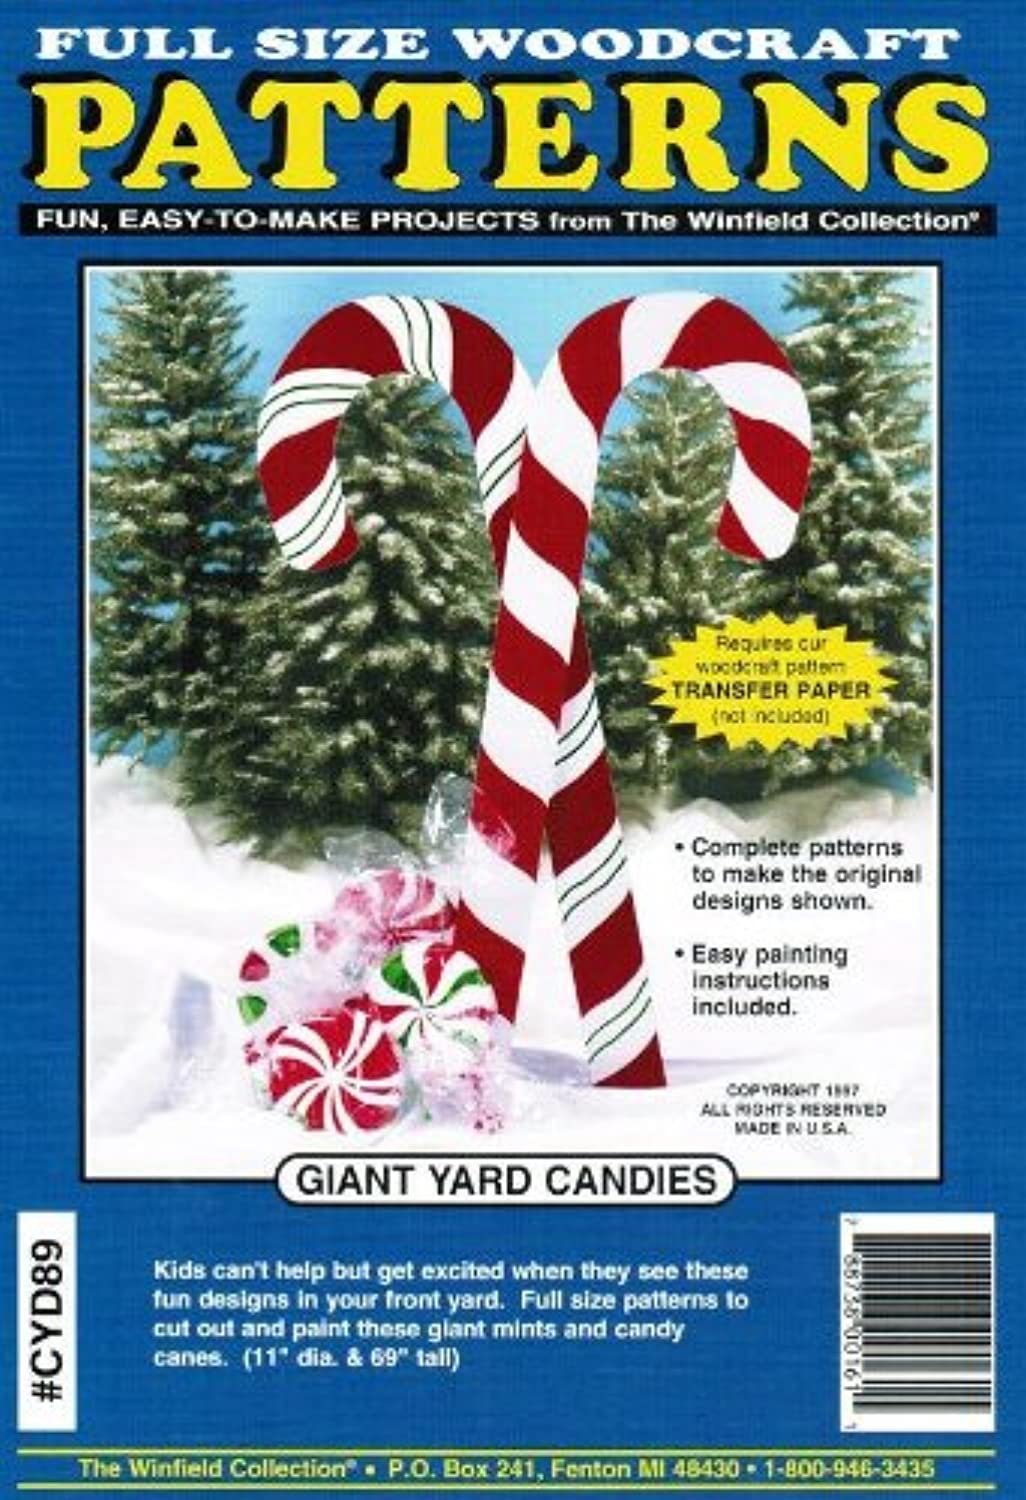 Giant Yard Candies Woodcraft Pattern by Winfield Collection B002U8BDZG Spaß  | Große Klassifizierung